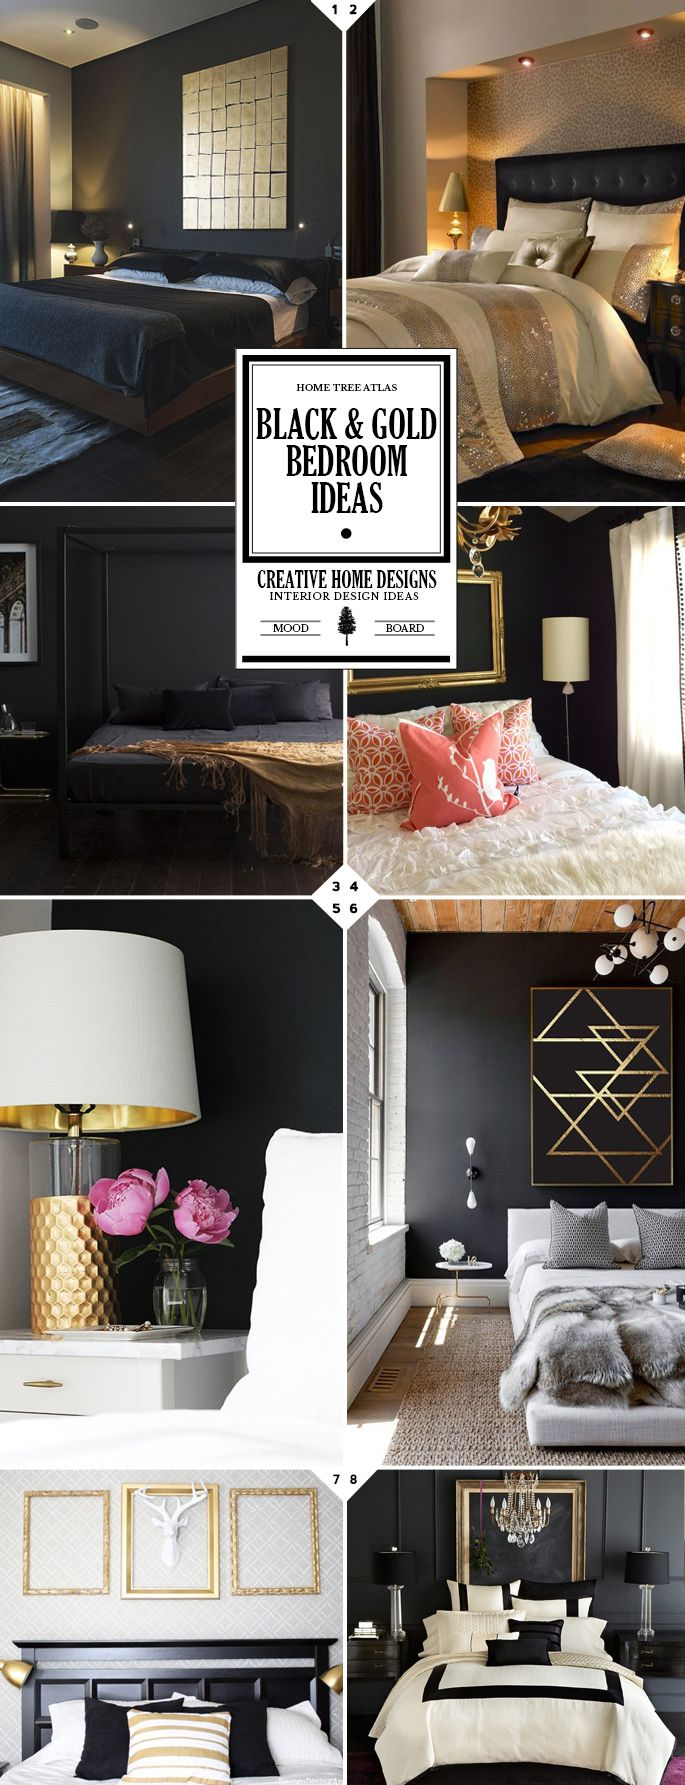 25 best ideas about black gold bedroom on pinterest black gold decor white gold room and. Black Bedroom Furniture Sets. Home Design Ideas